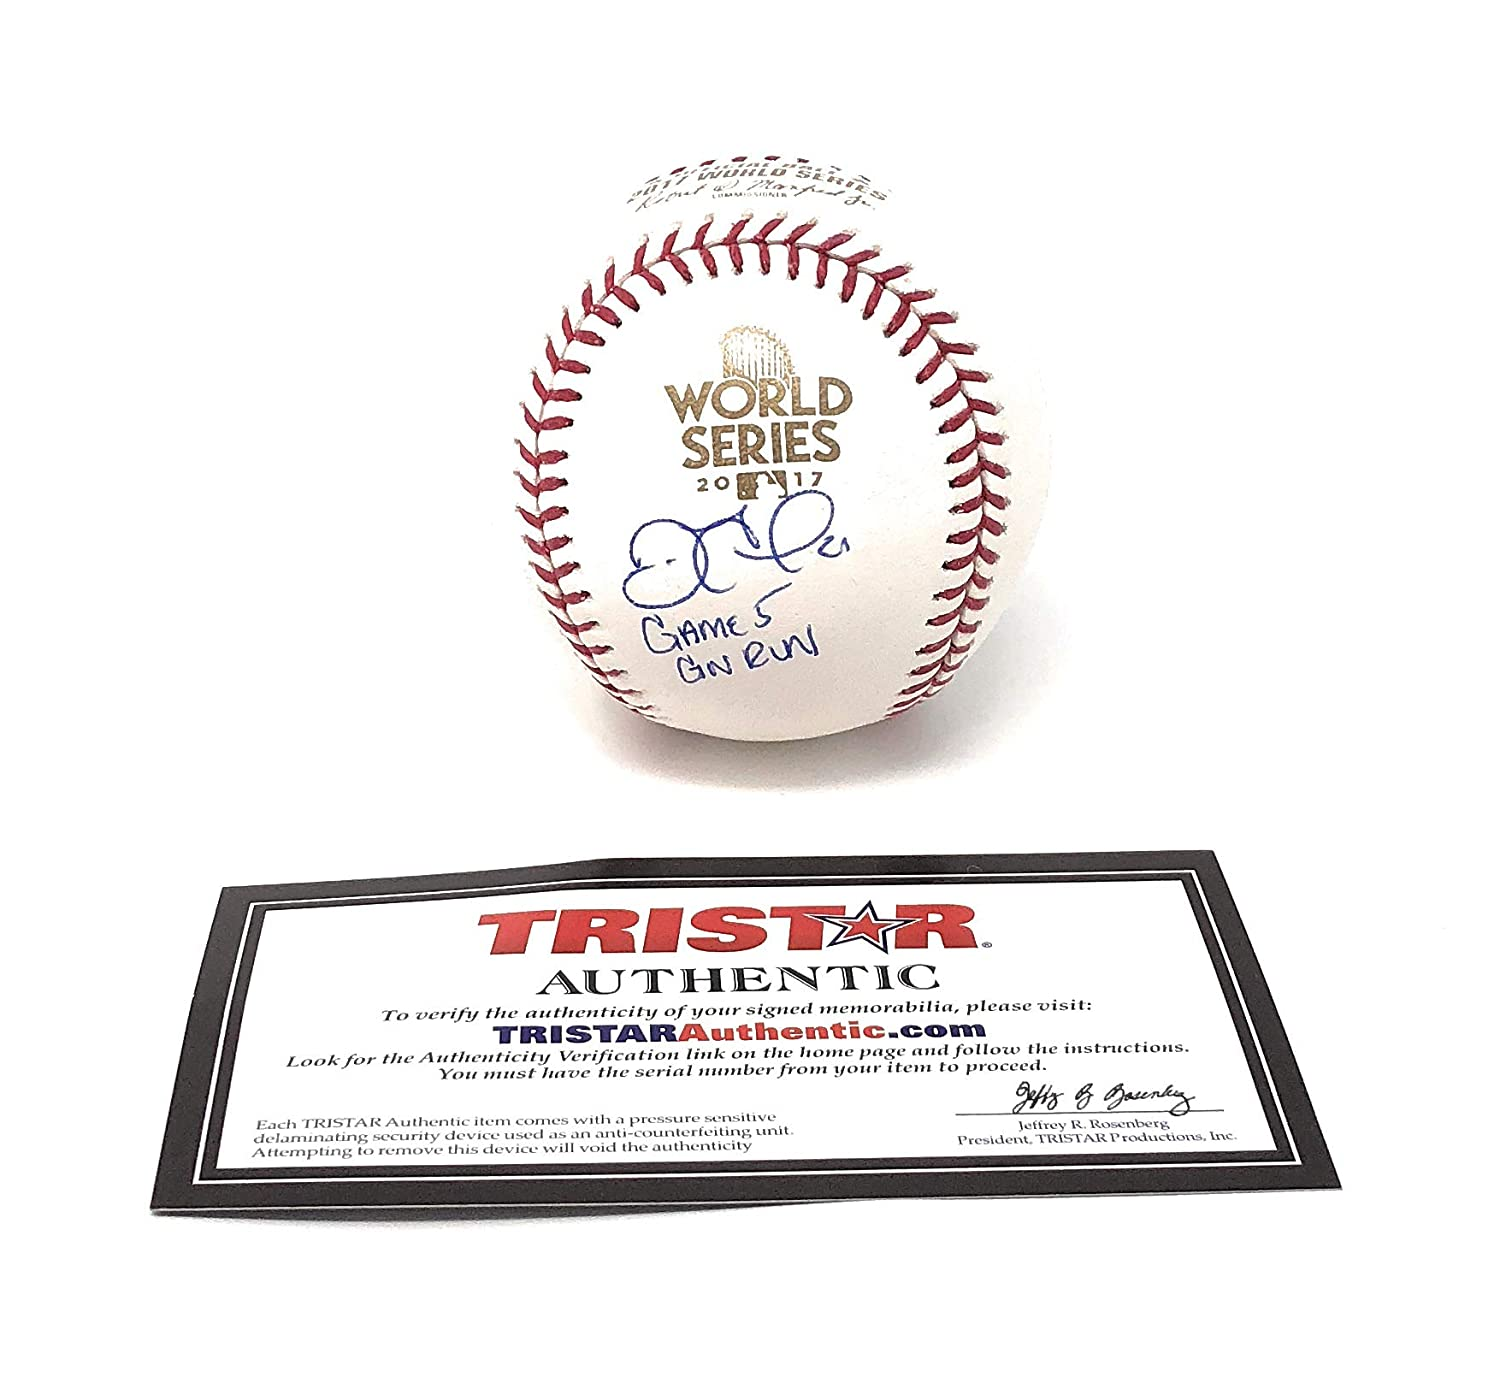 Derek Fisher Houston Astros Signed Autograph Official MLB World Series Baseball Inscribed Game 5 GW Run Limited Edition Tristar Authentic Certified